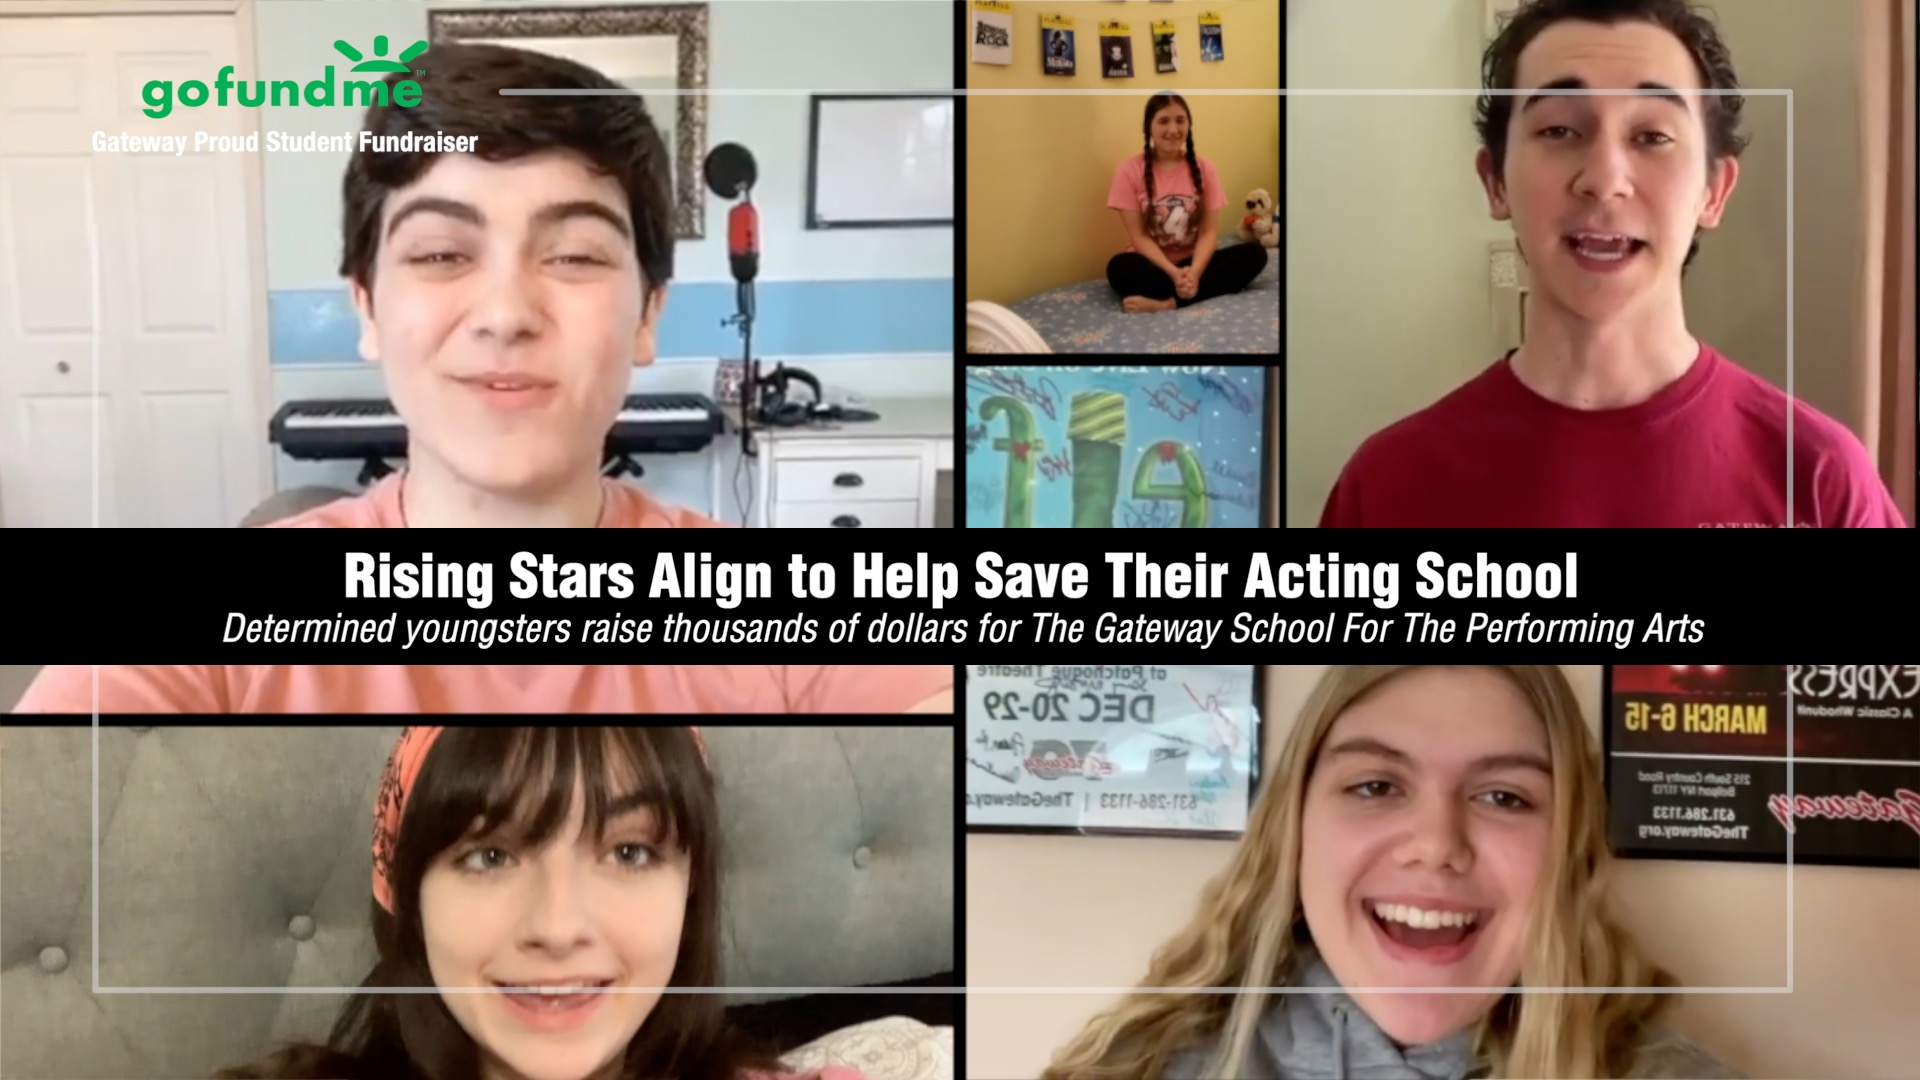 Rising Stars Align to Help Save The Gateway School for the Performing Arts